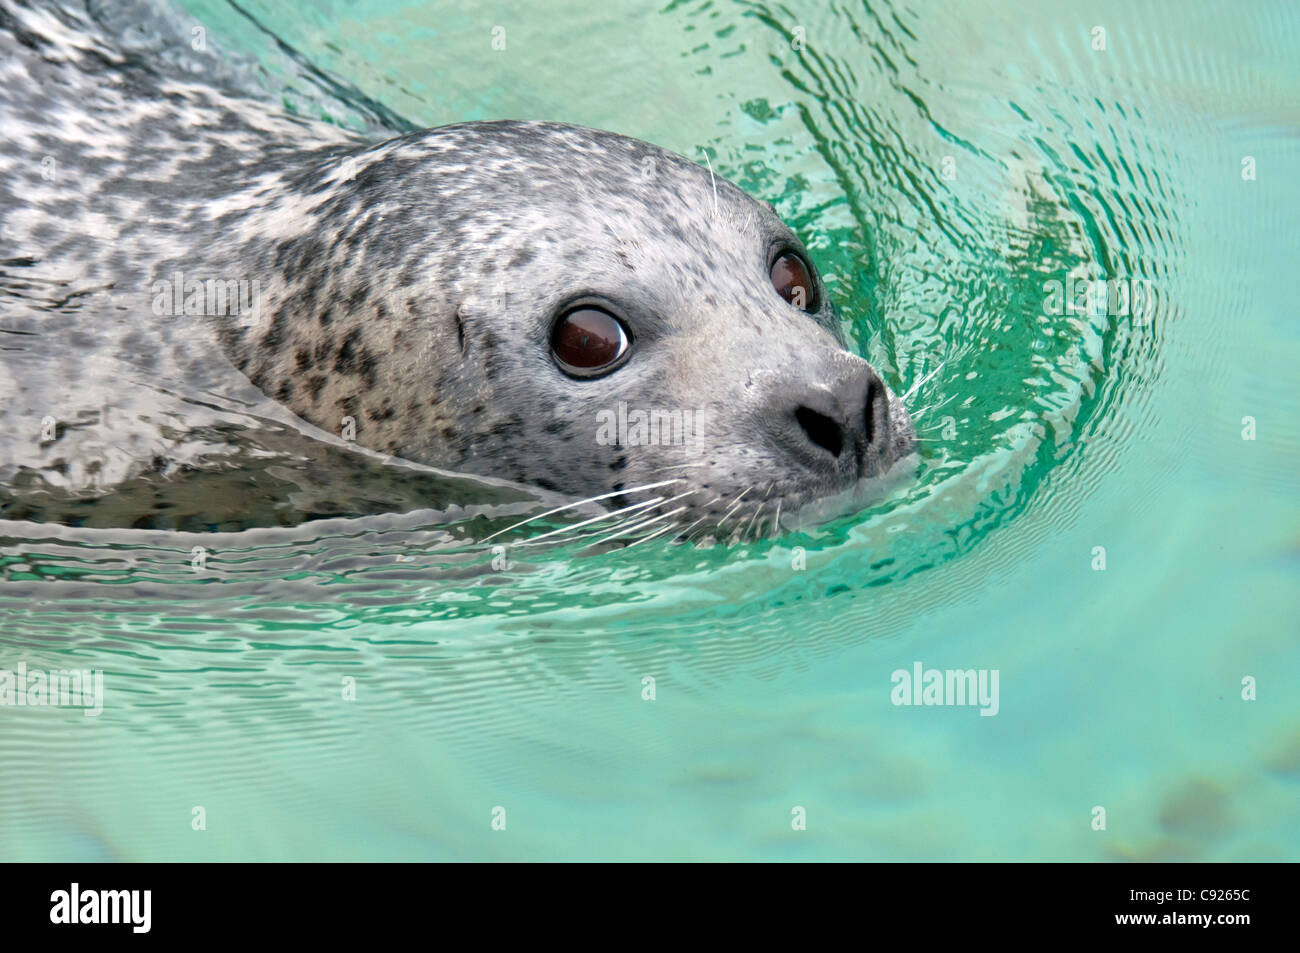 CAPTIVE Close up of a harbor seal swimming, Point Defiance Zoo, Tacoma, Washington, USA - Stock Image